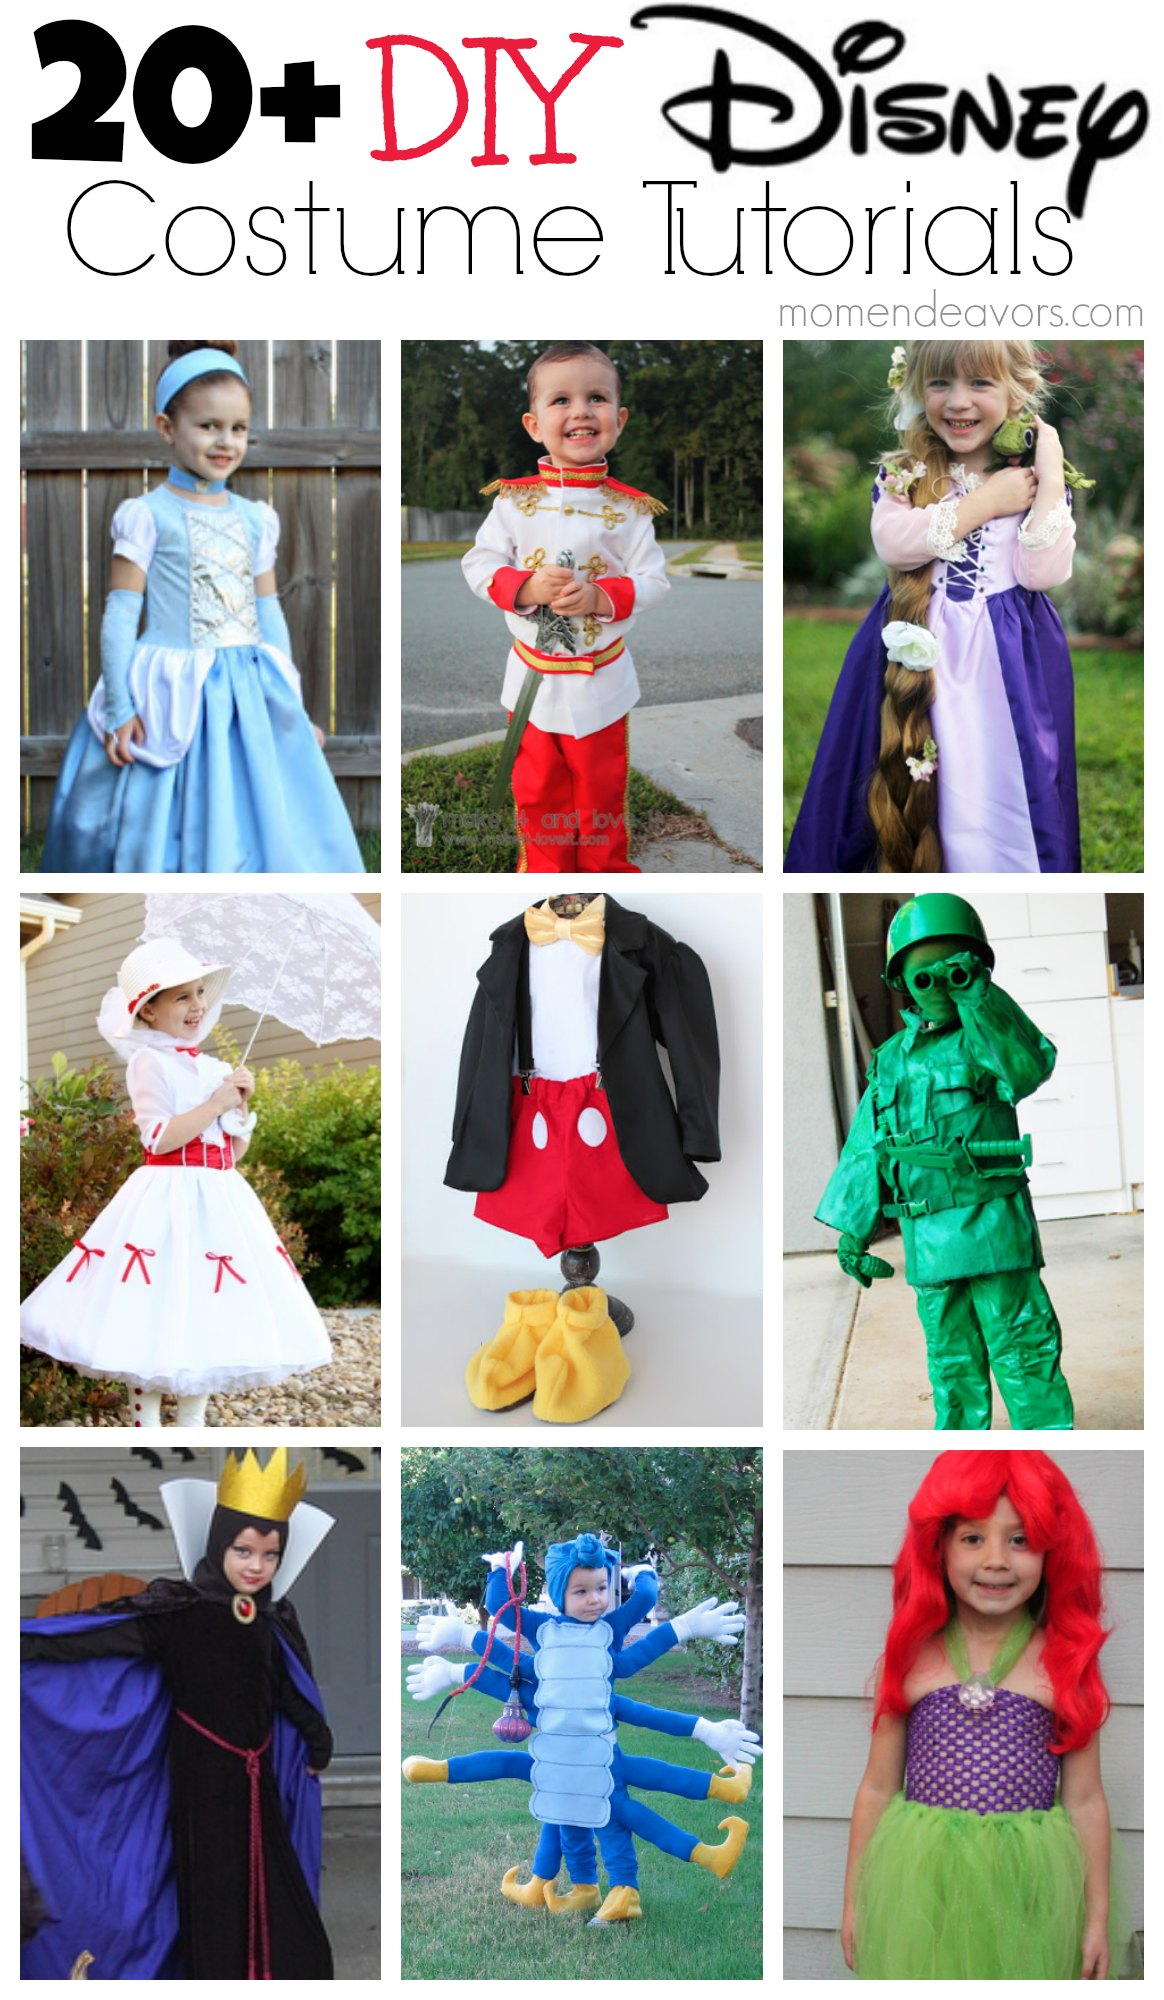 20+ diy disney halloween costumes